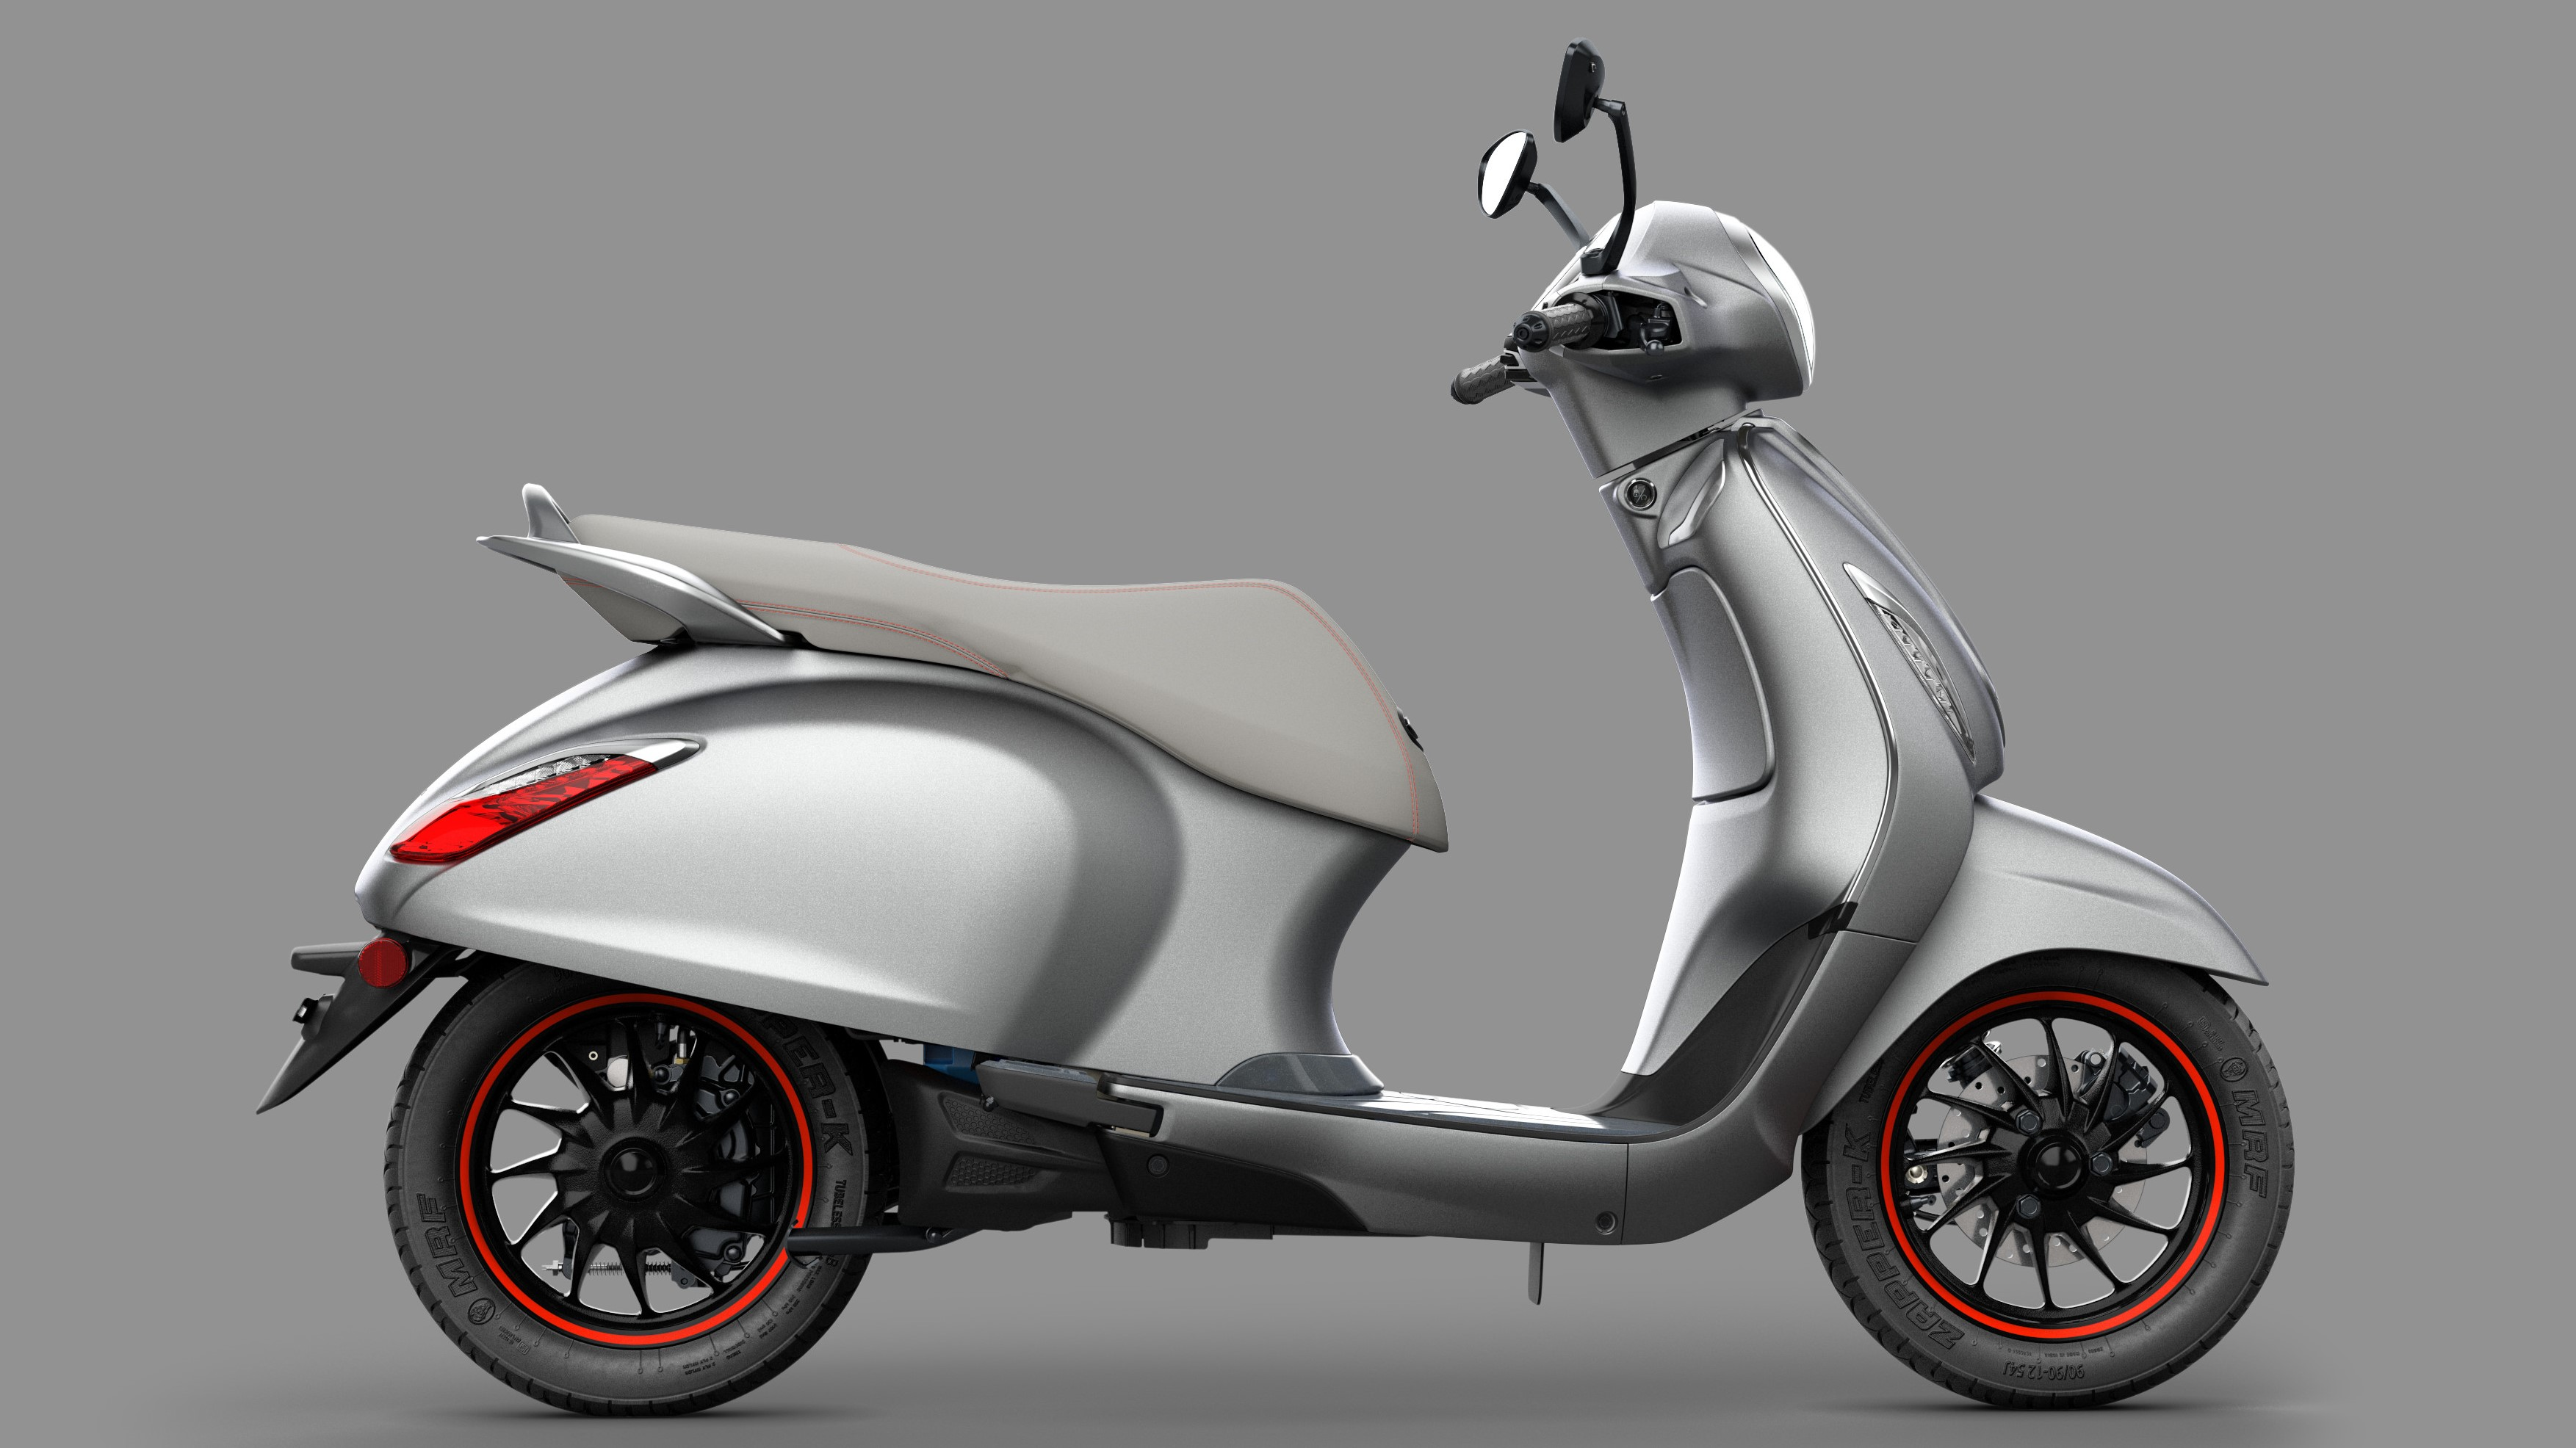 Bajaj enters the electric scooter segment with the new Chetak